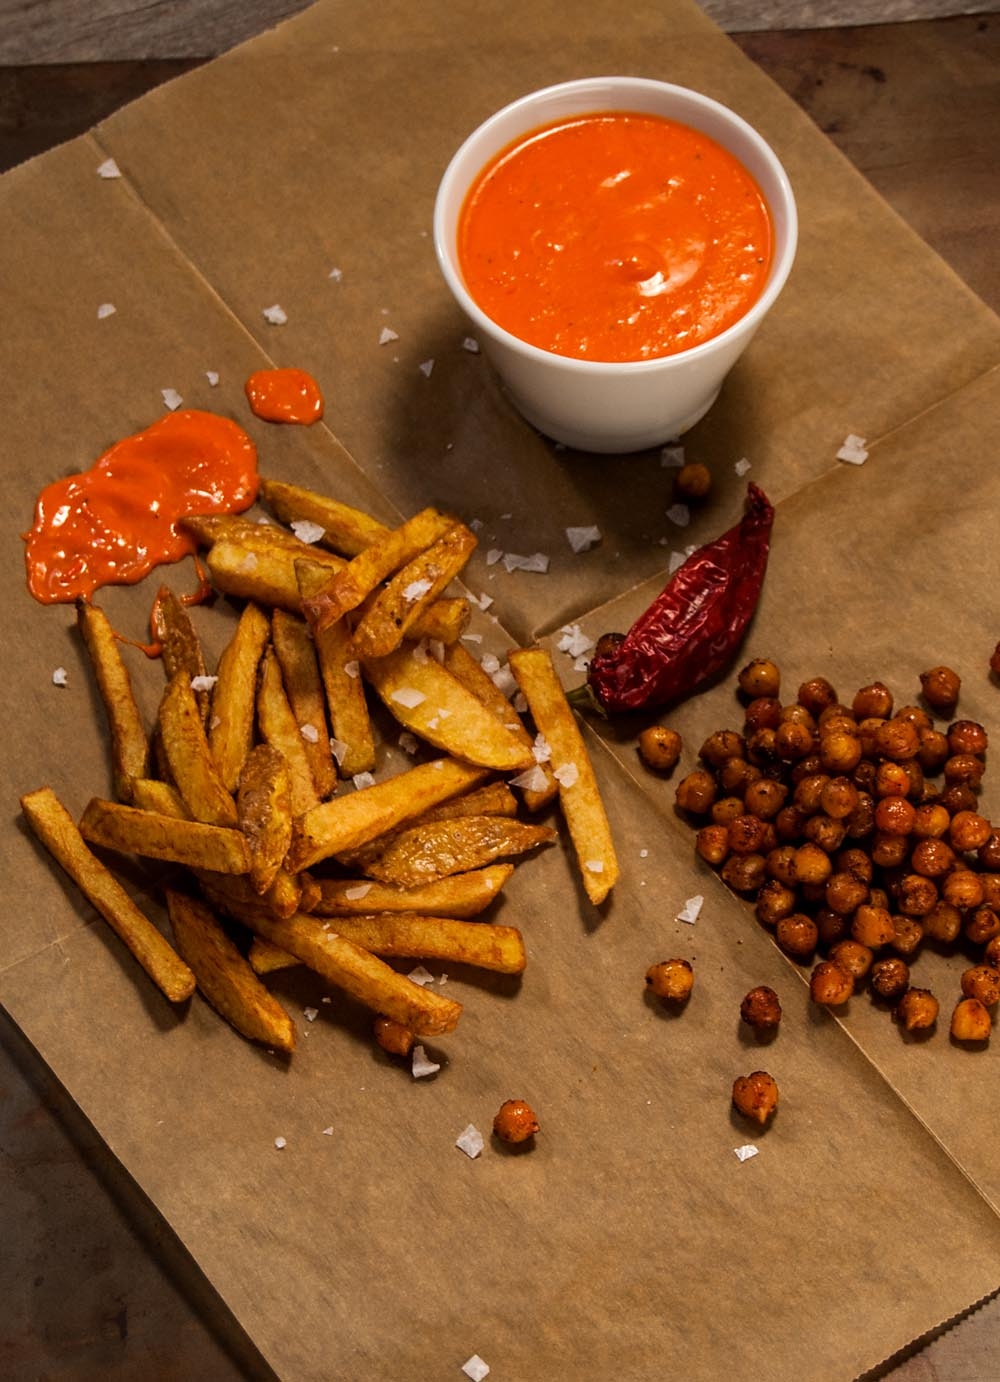 Mojo Rojo with roasted chickpeas and french fries